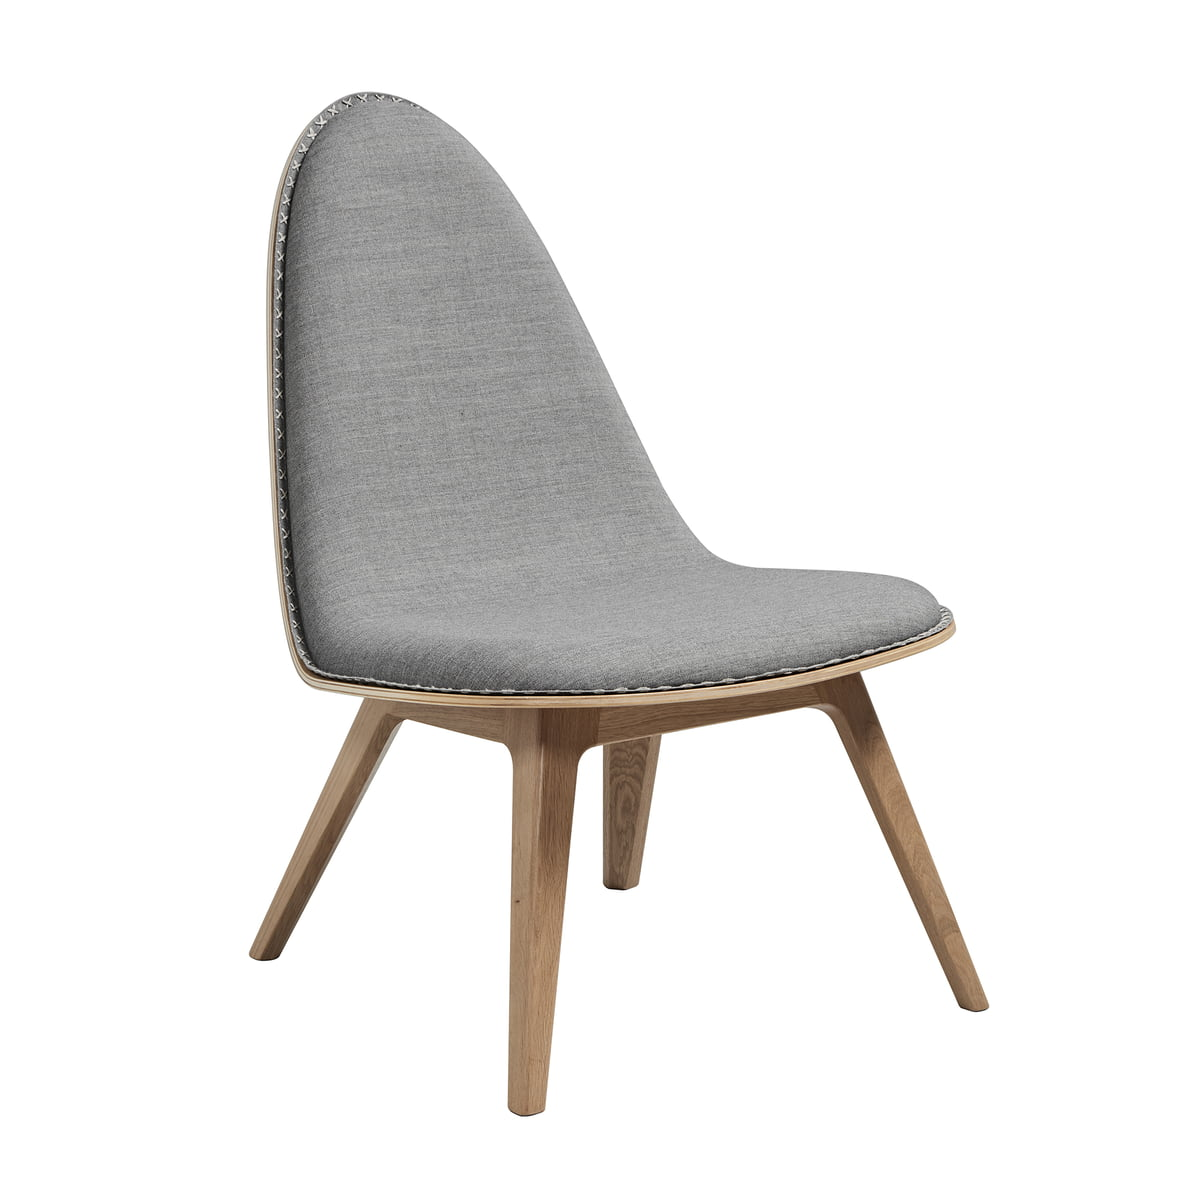 Nordic Lounge Chair By Sack It In Light Stained Oak / Light Gray Remix, With